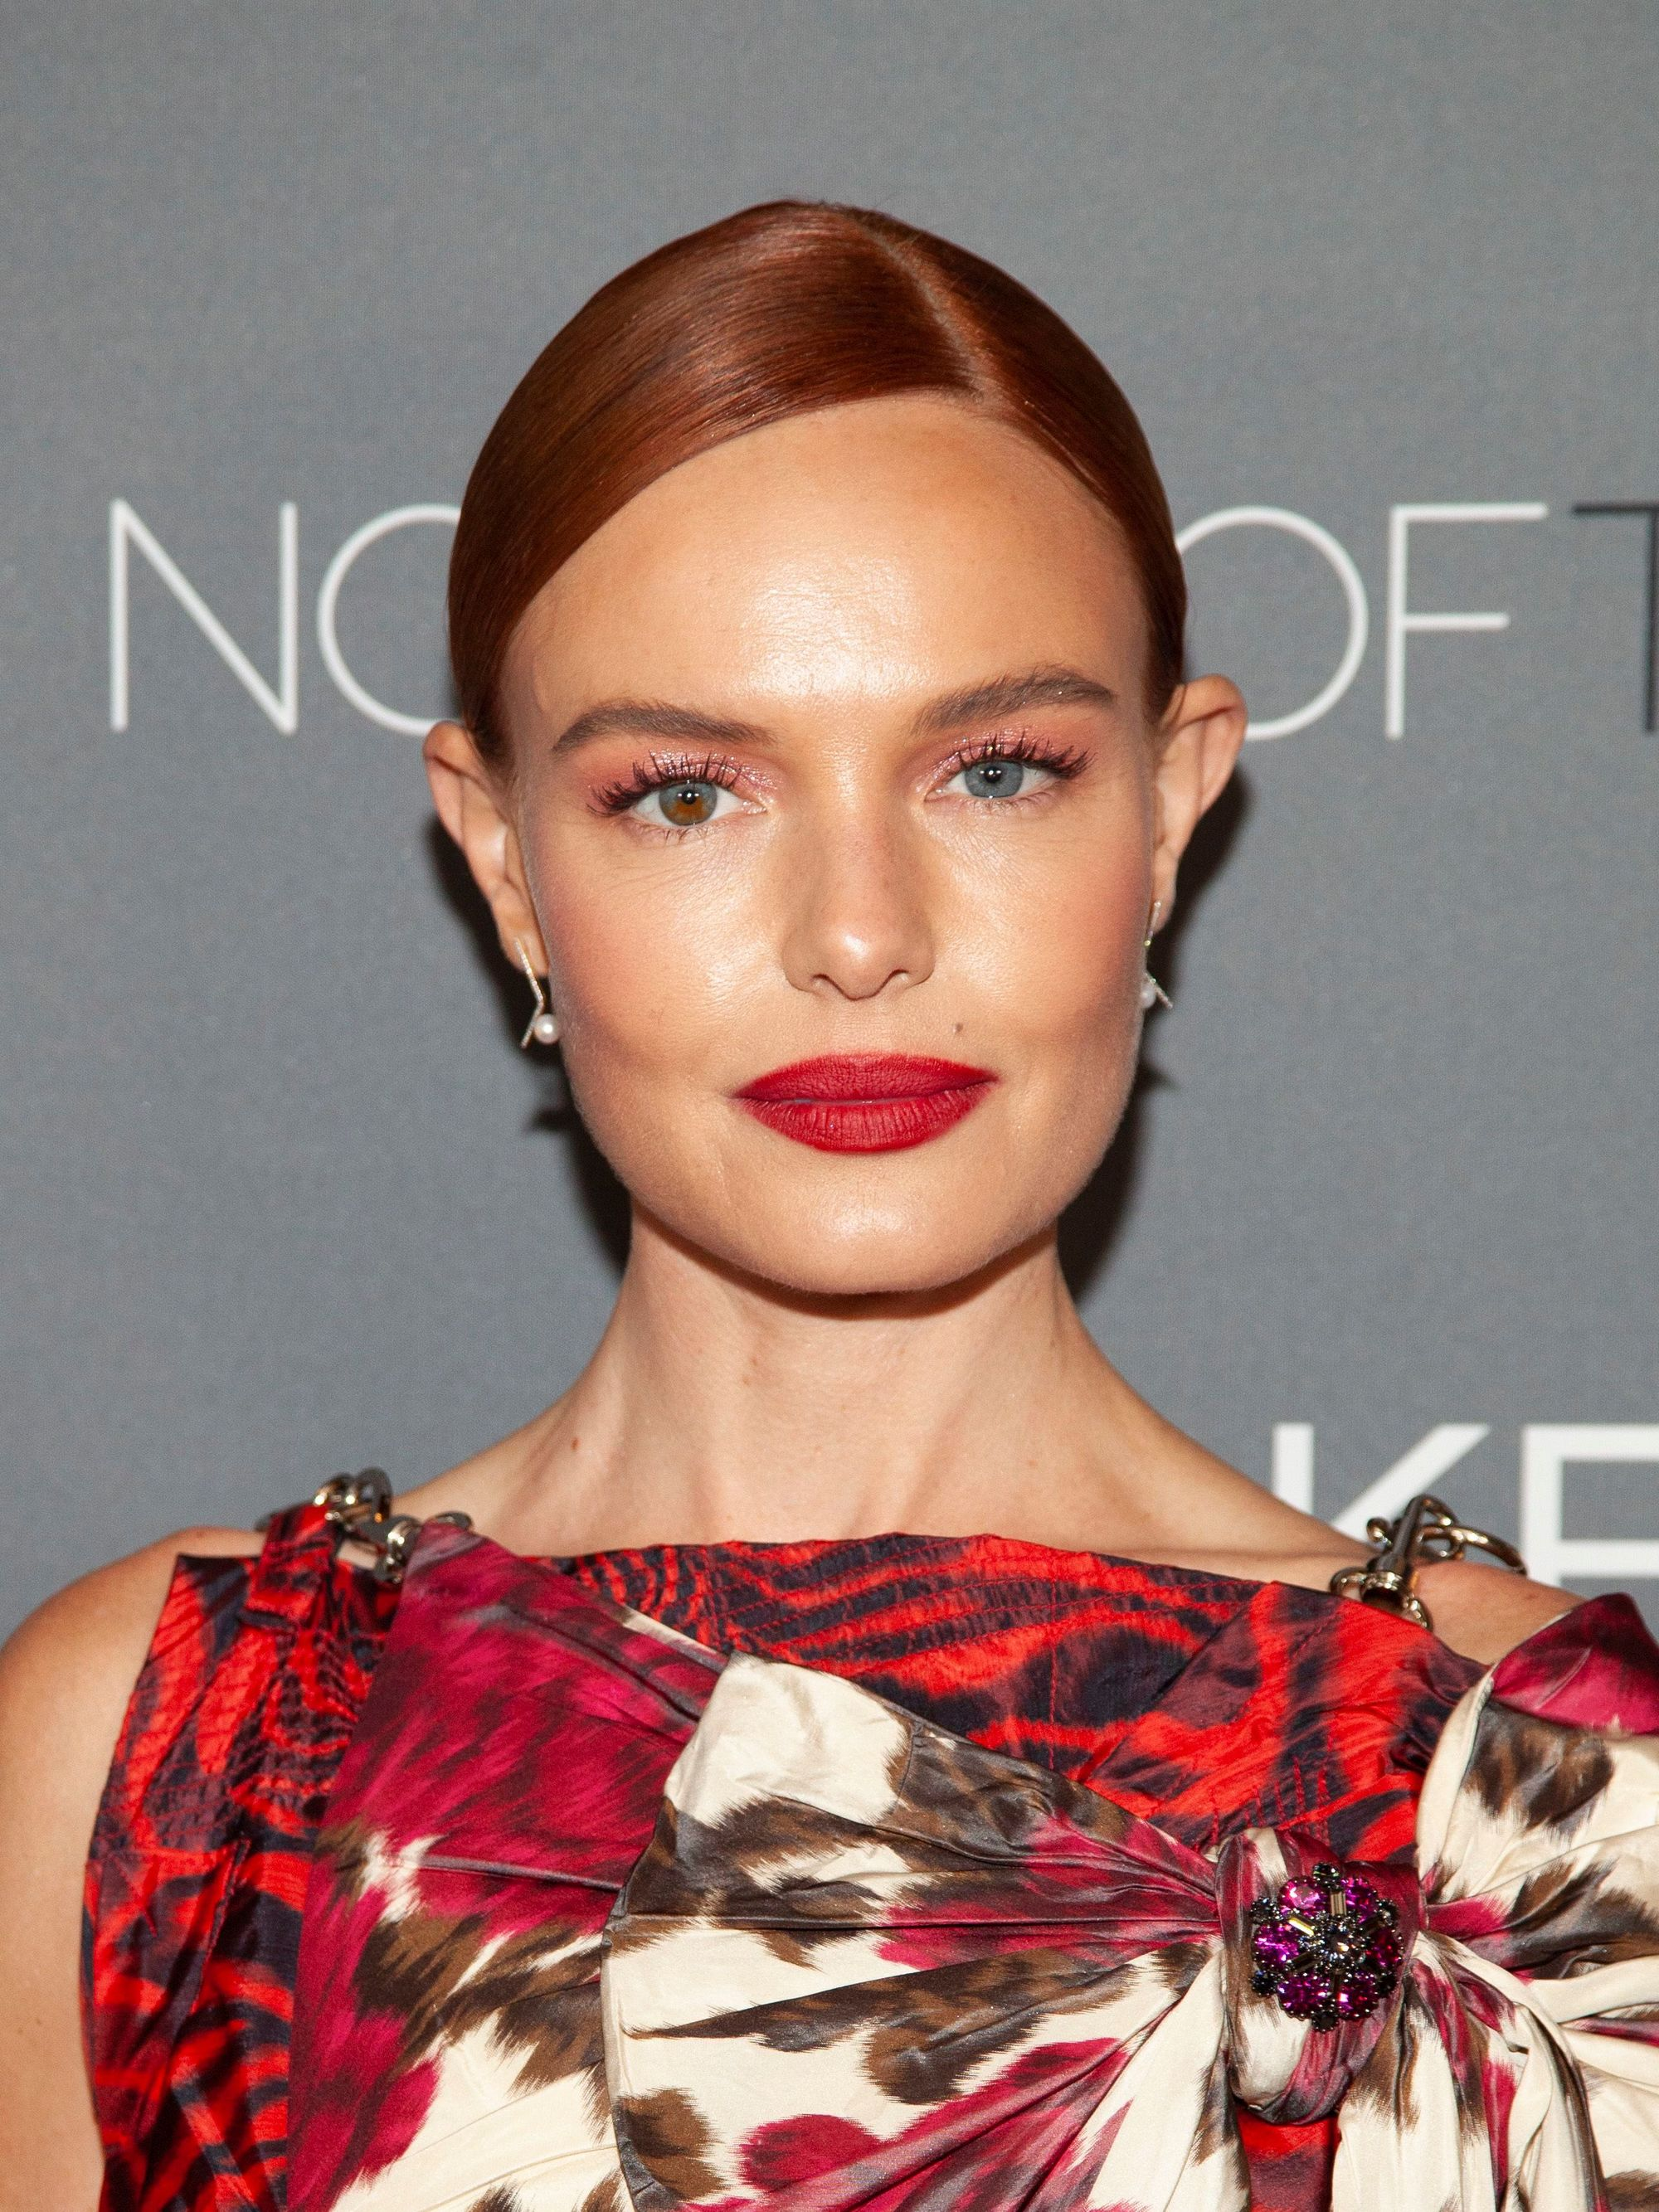 Hair trends 2019: Kate Bosworth with copper hair styled in a smooth low bun with a side parting wearing a red pattern dress and red lipstick.